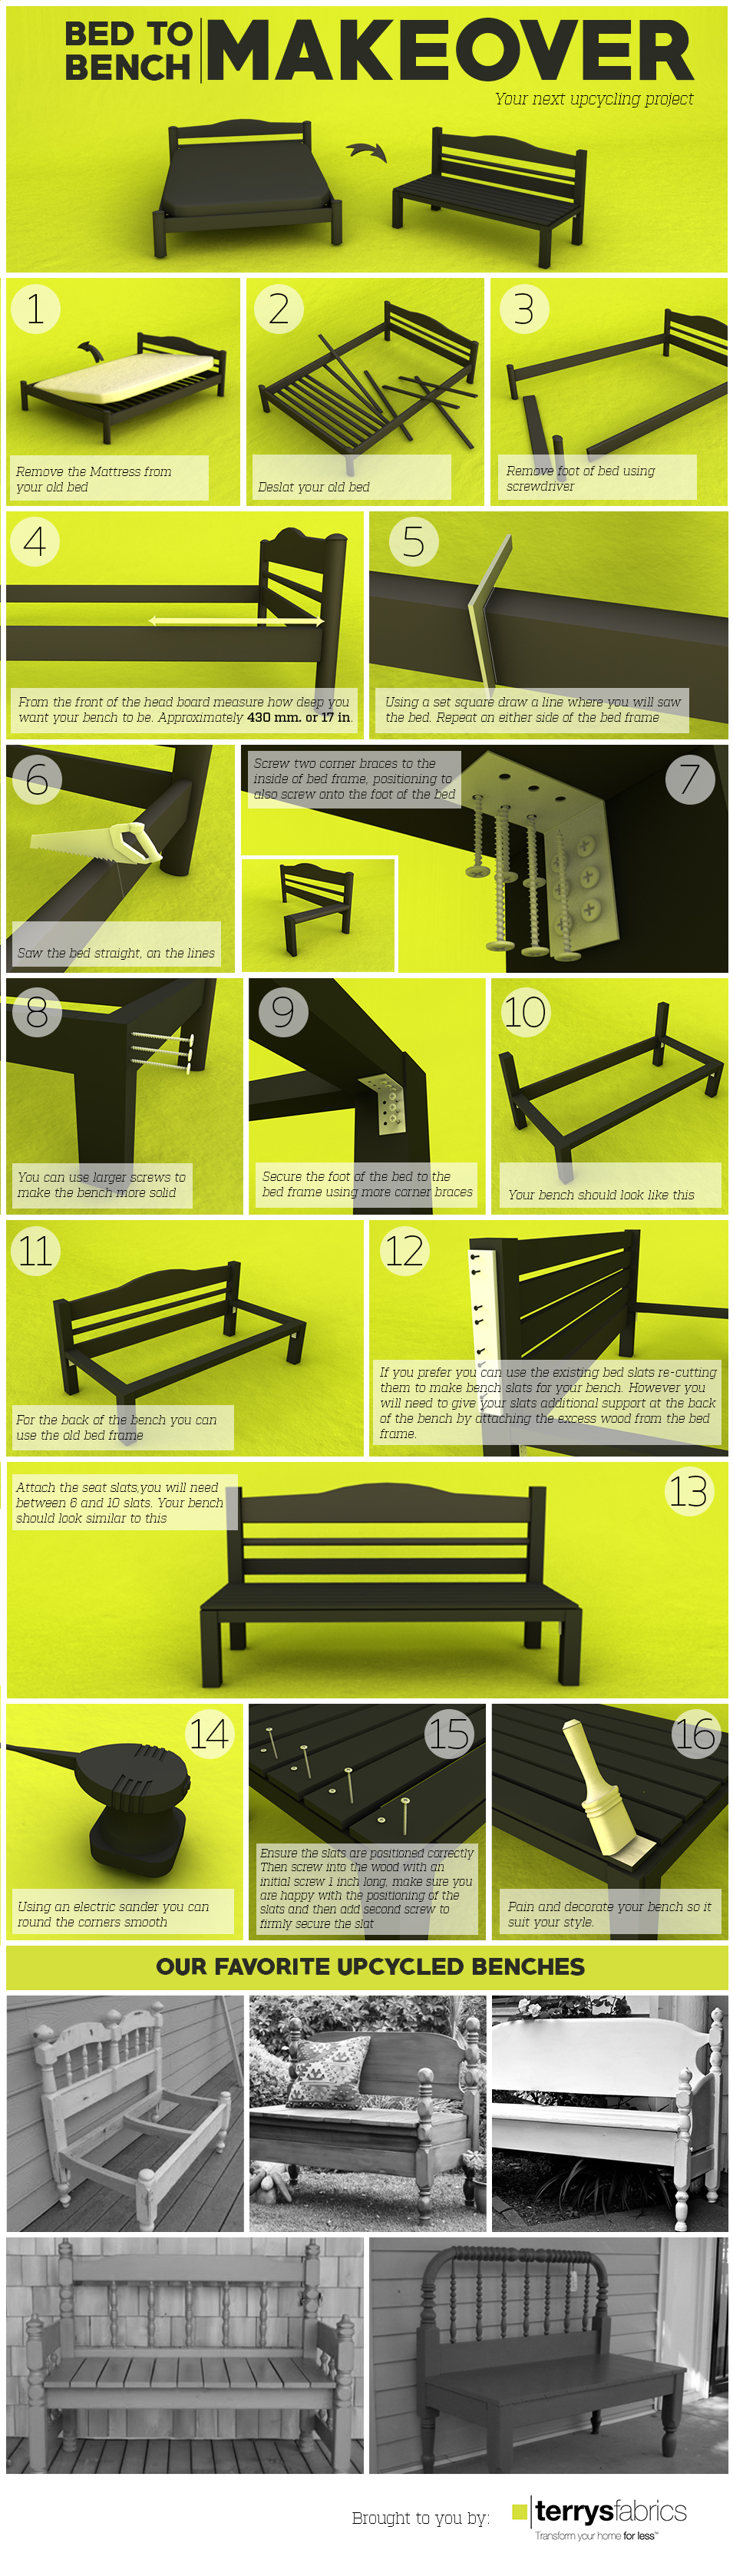 DIY Headboard Bench How-to